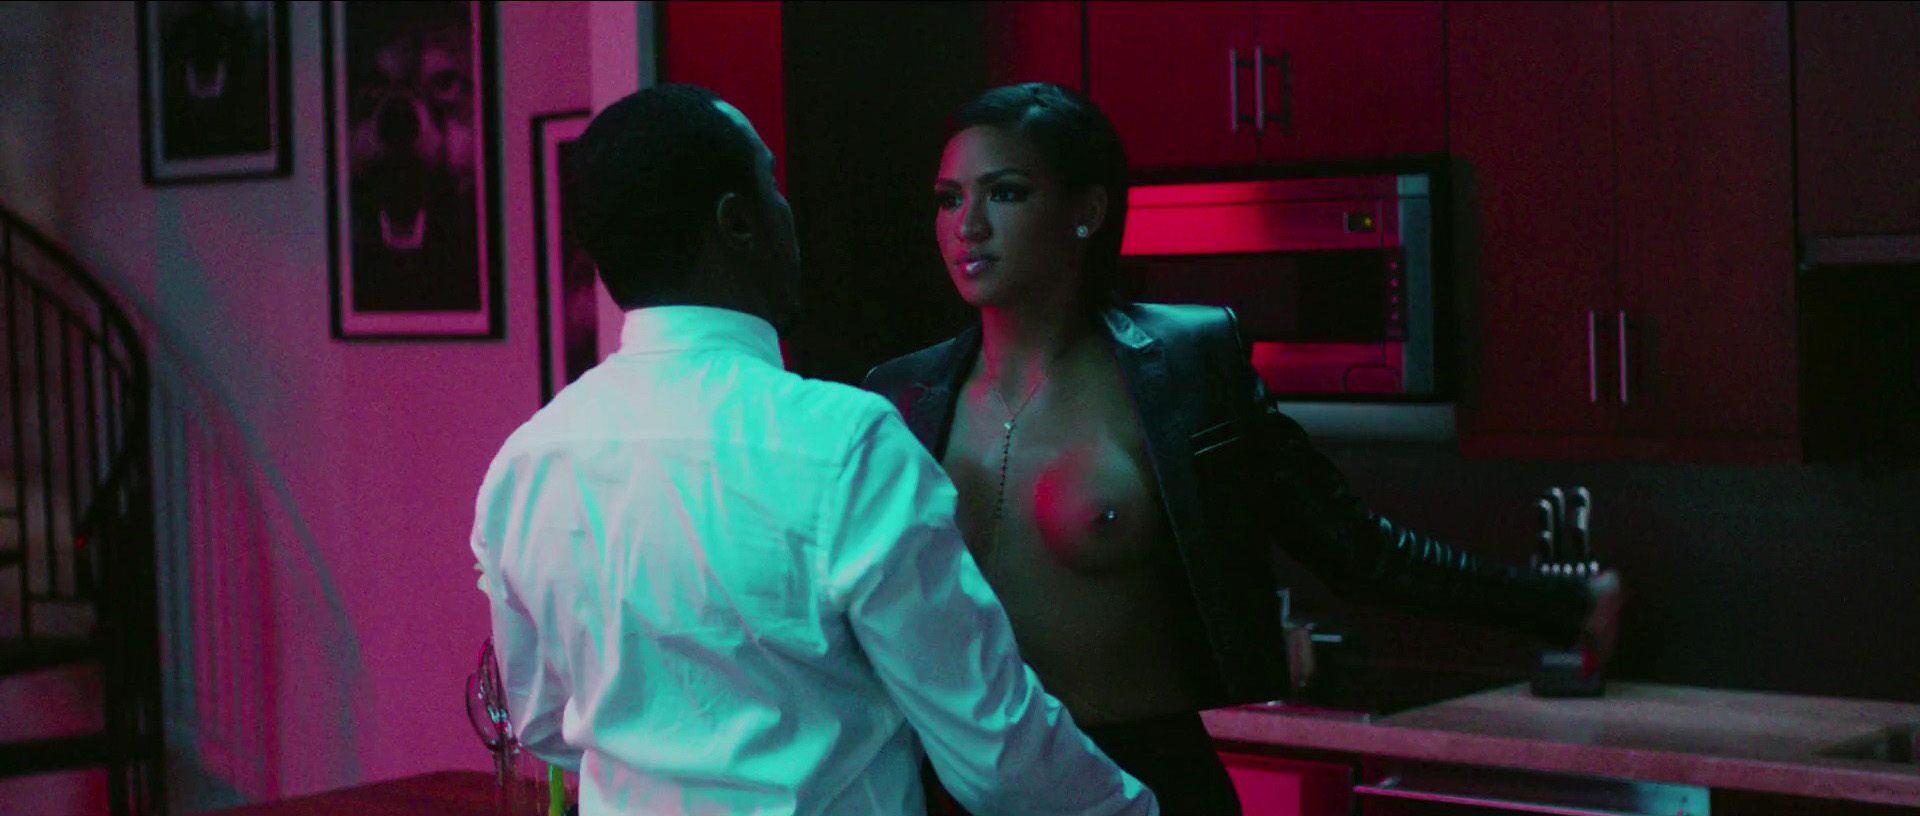 Cassie Ventura – 3AM (2015) HD 1080p